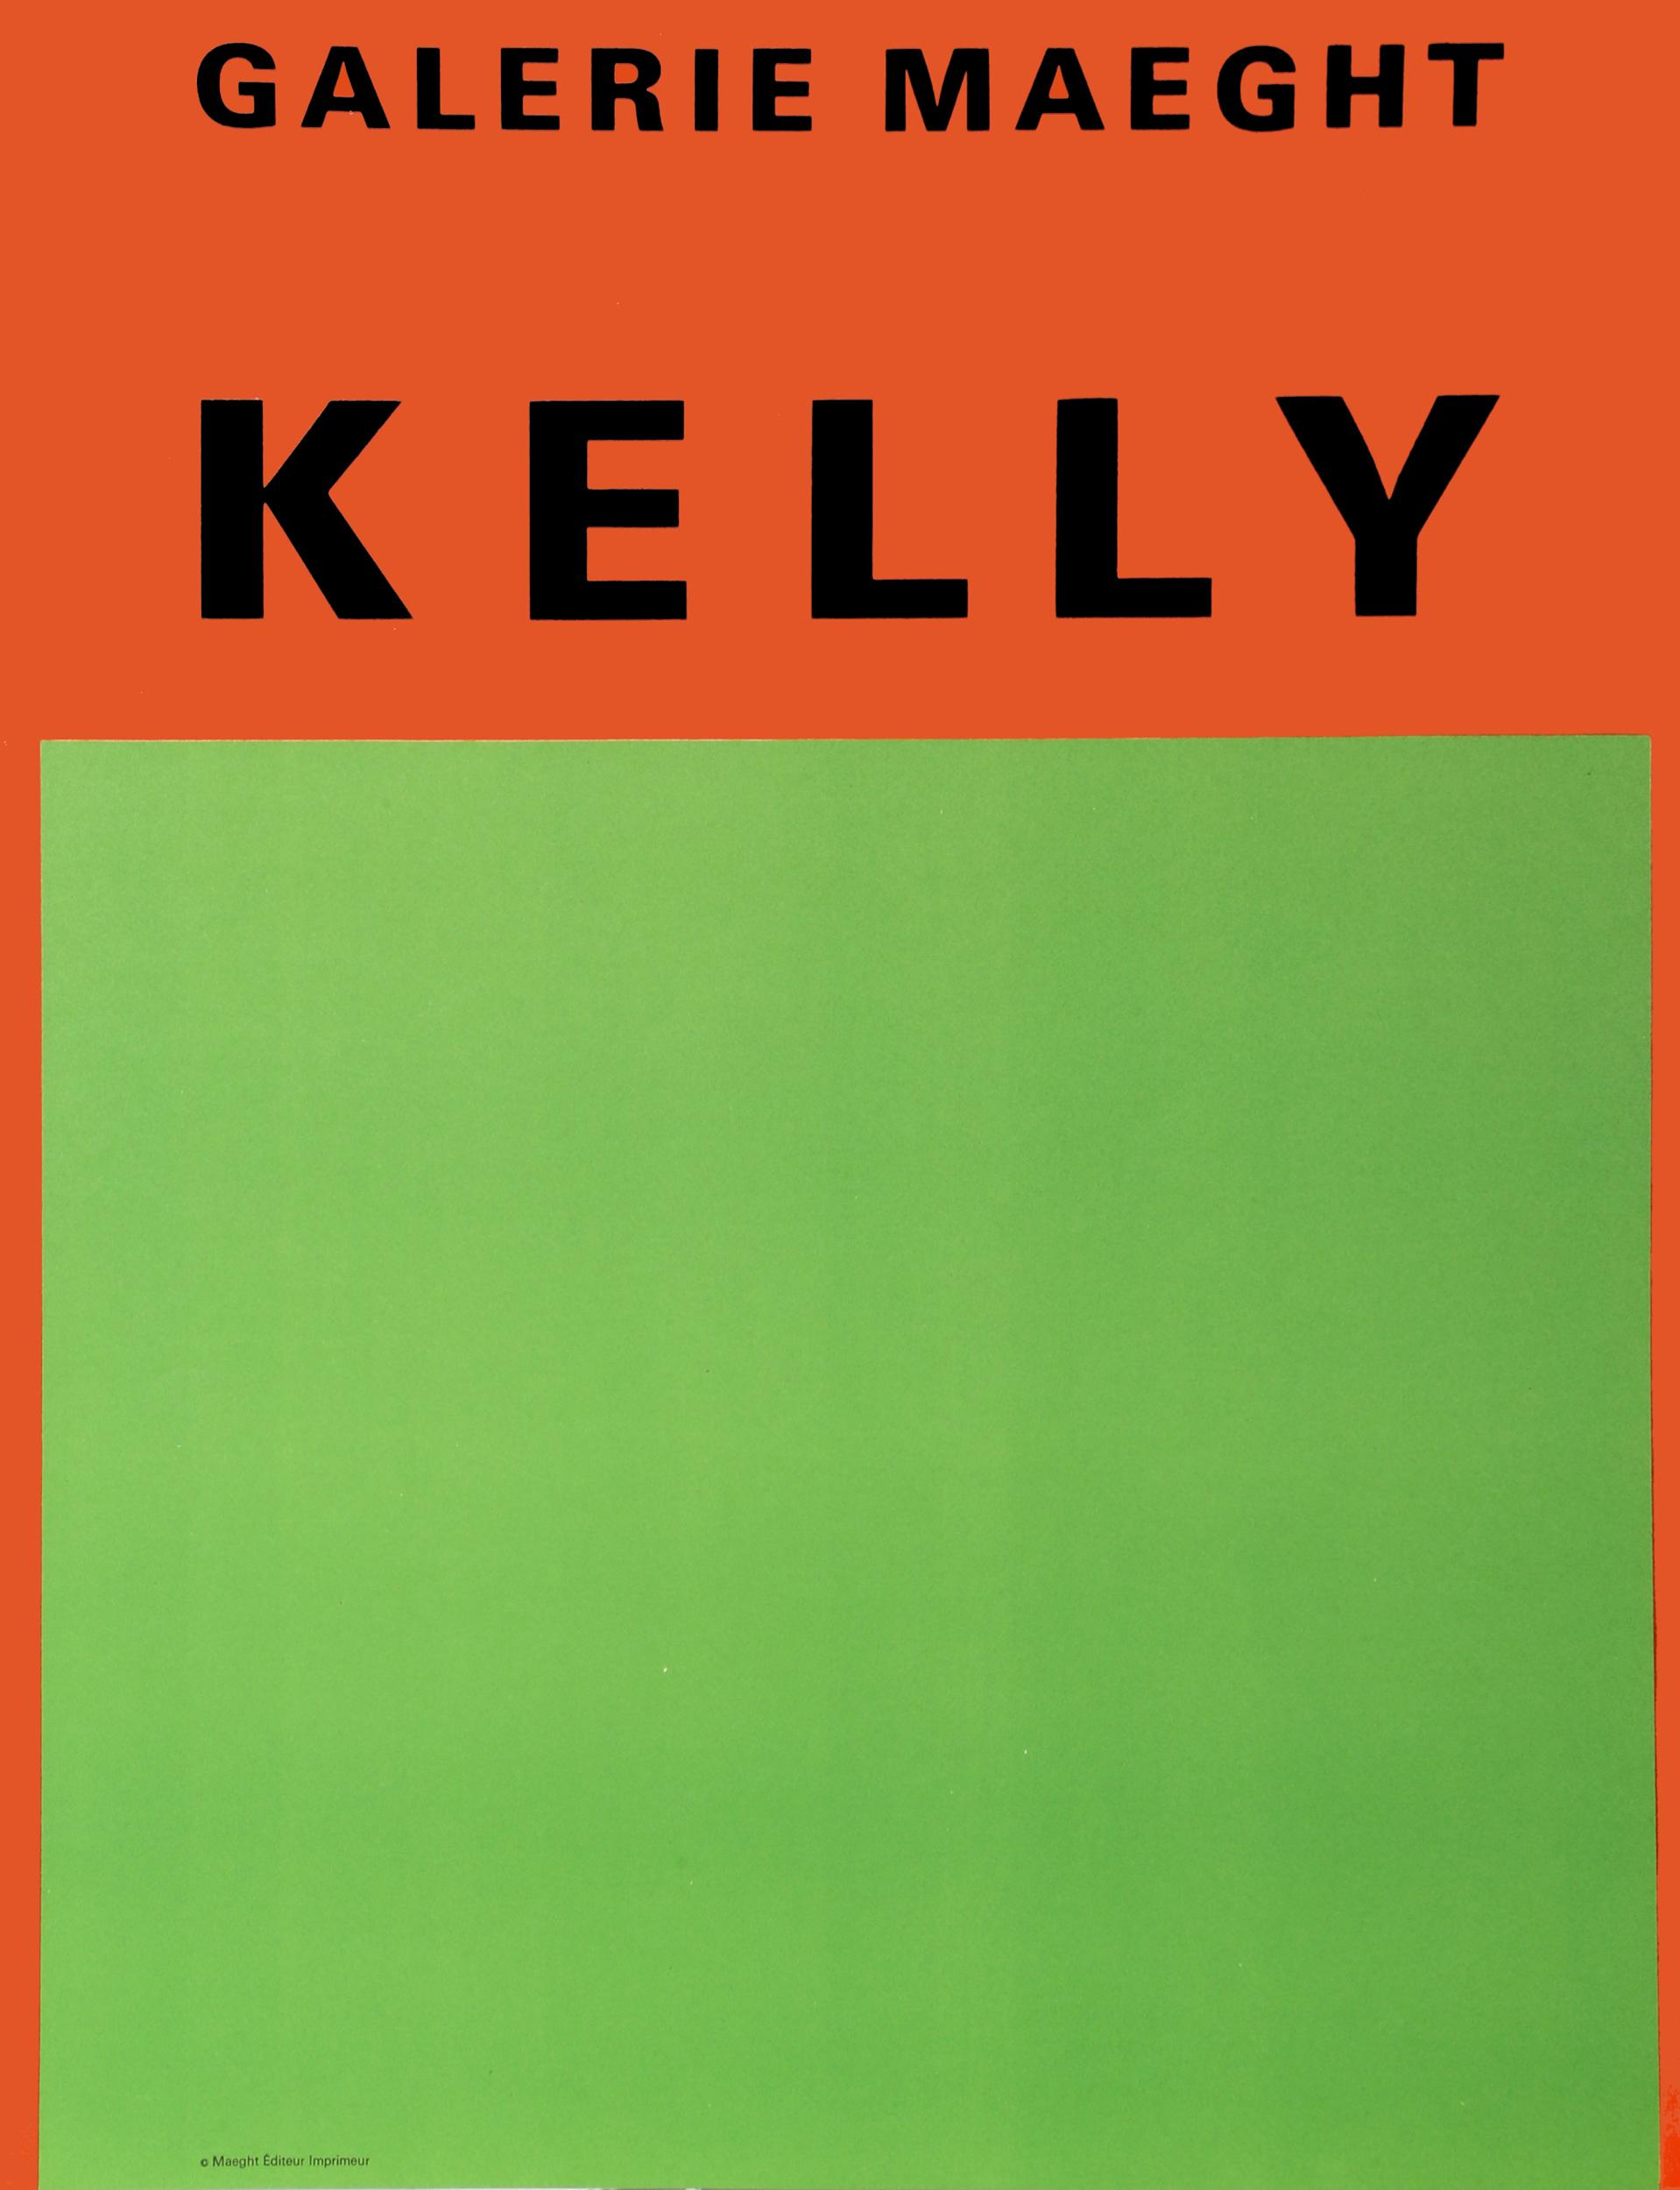 Ellsworth Kelly, Galerie Maeght 2, Lithograph Poster